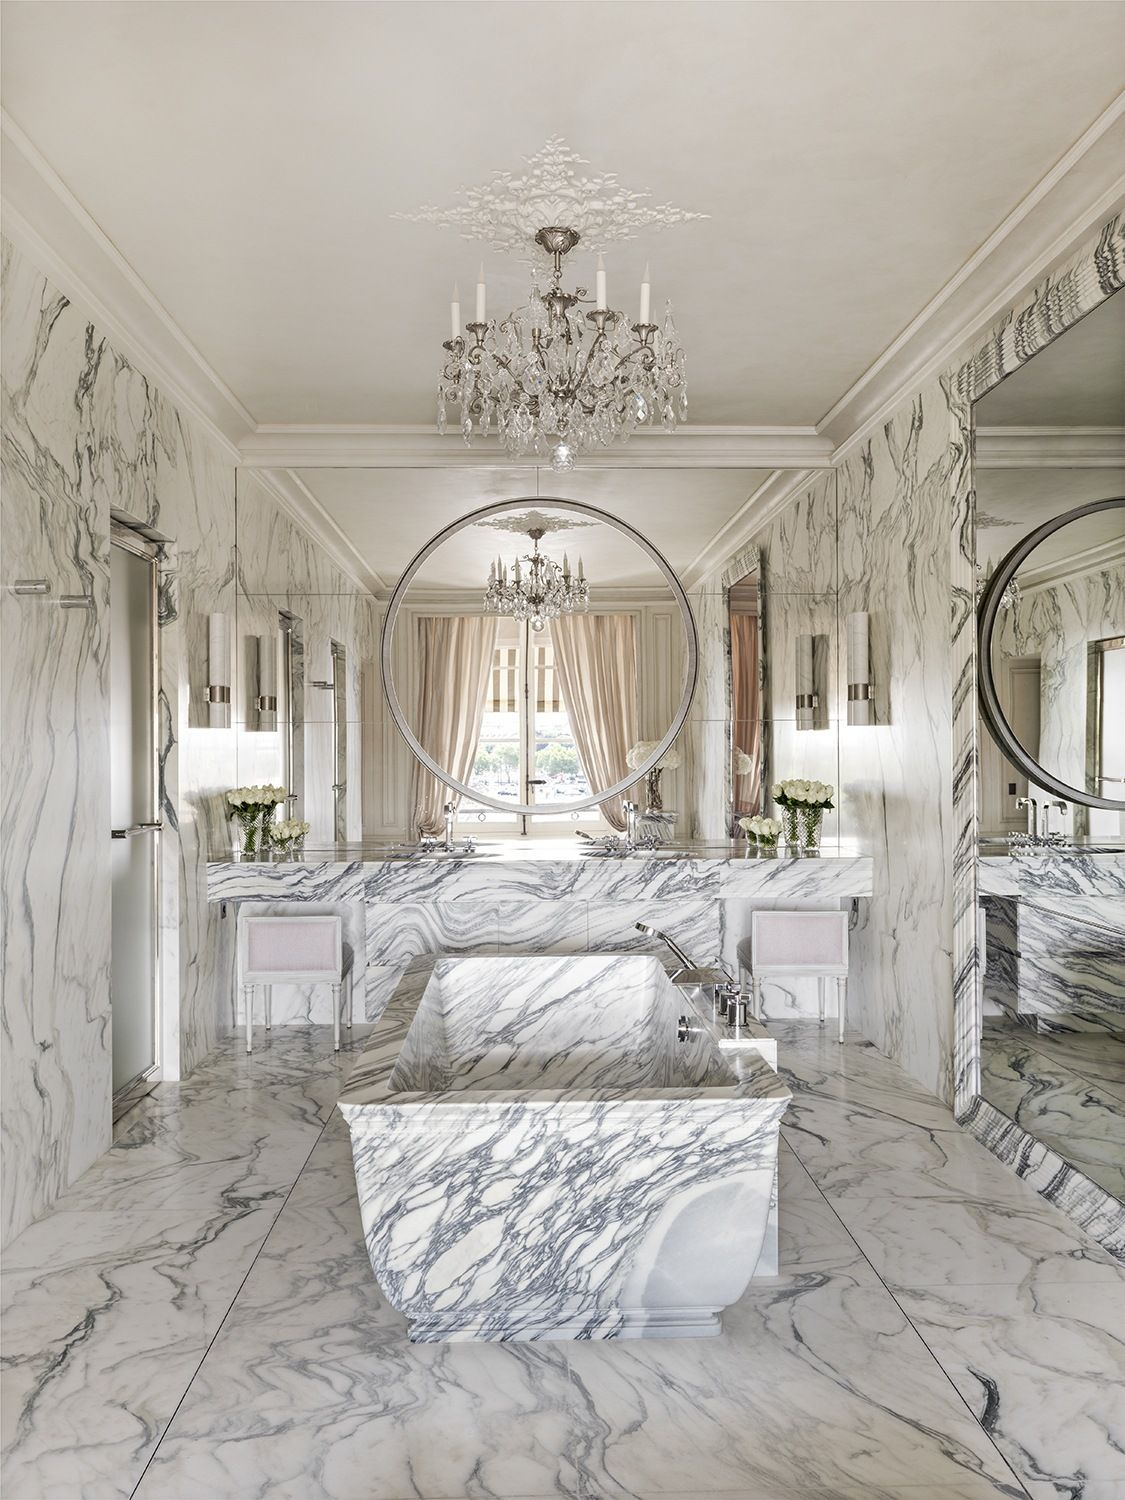 Luxury Hotel Bedrooms: 7 Of The Most Luxurious Hotel Suites In Paris In 2020